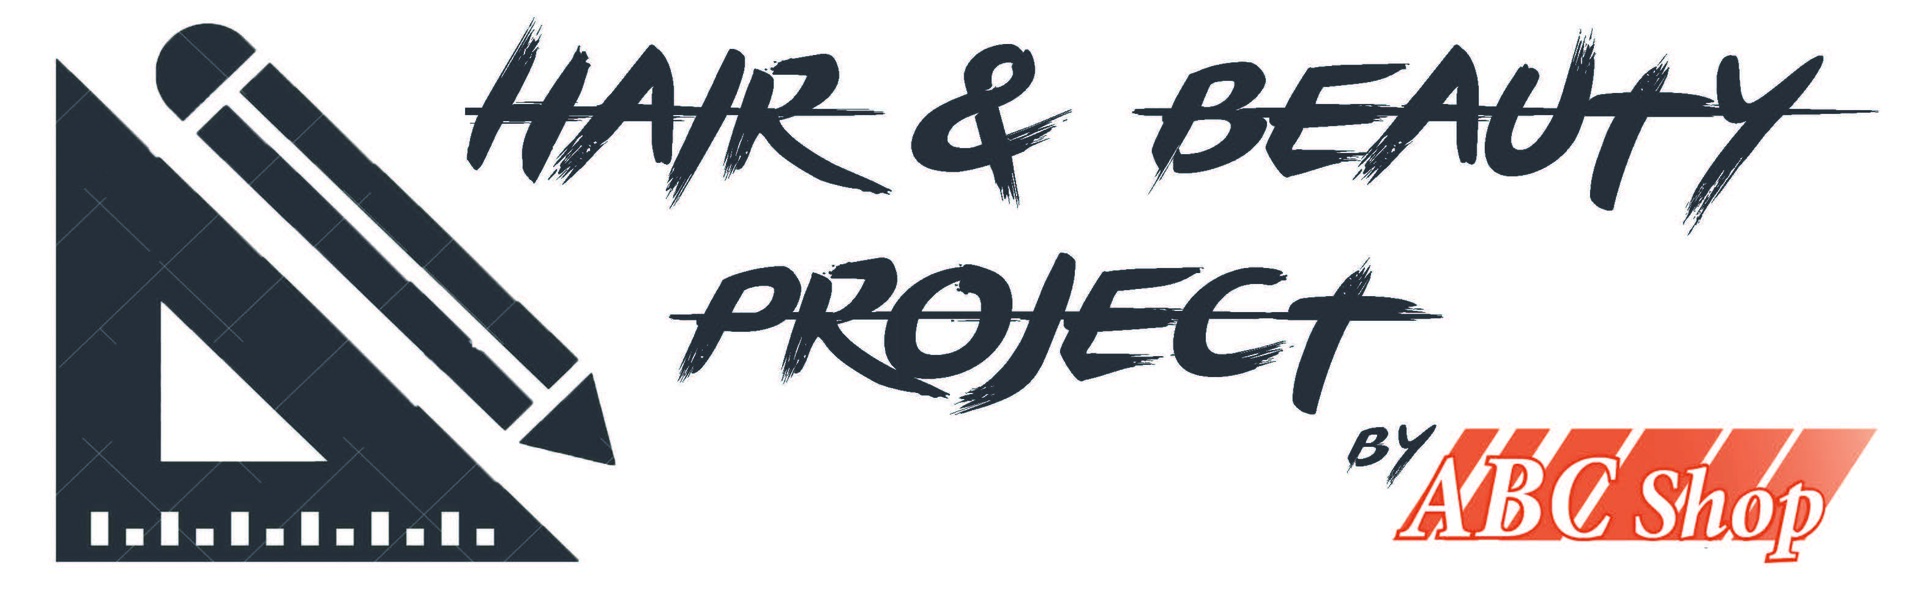 Hair&Beauty Project store